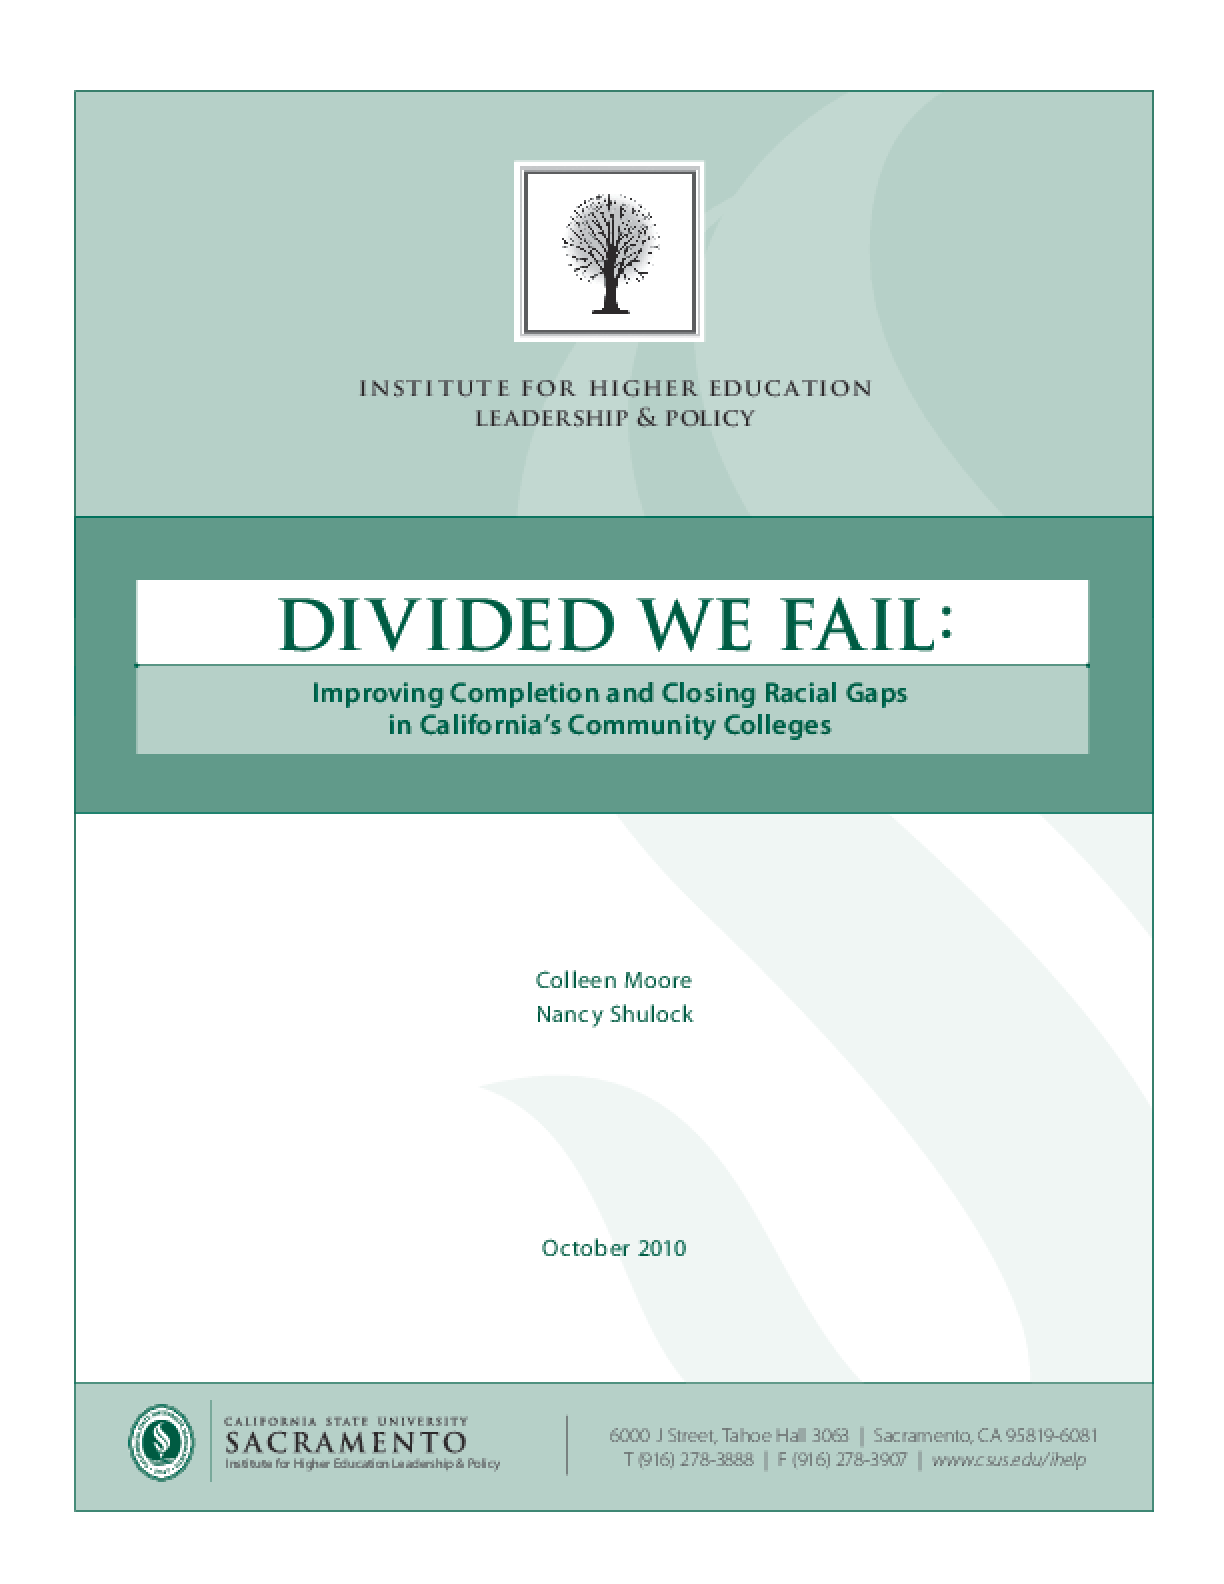 Divided We Fail: Improving Completions and Closing Racial Gaps in California's Community Colleges